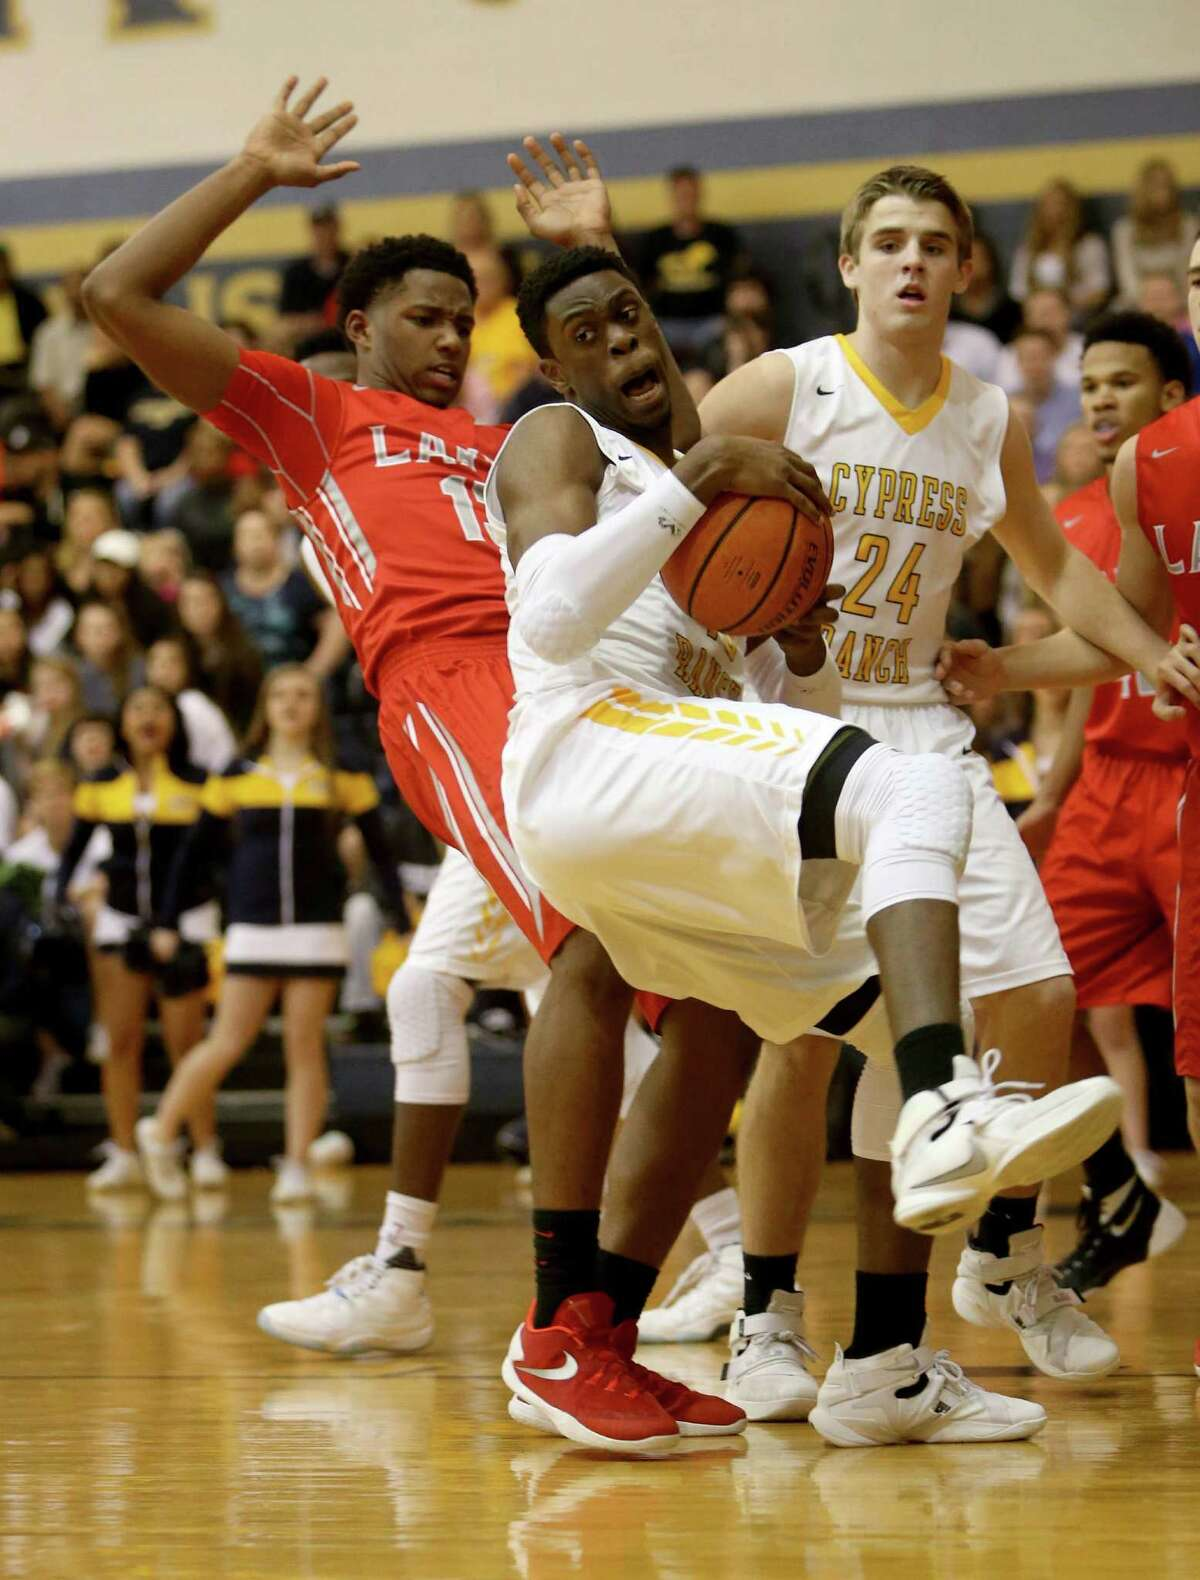 Anthony Agu (40), of Cypress Ranch, grabs a rebound in front of Jared Garcia (13), of Cypress Lakes, during the first quarter at Cypress Ranch High Friday, Jan. 29, 2016, in Cypress, Texas.